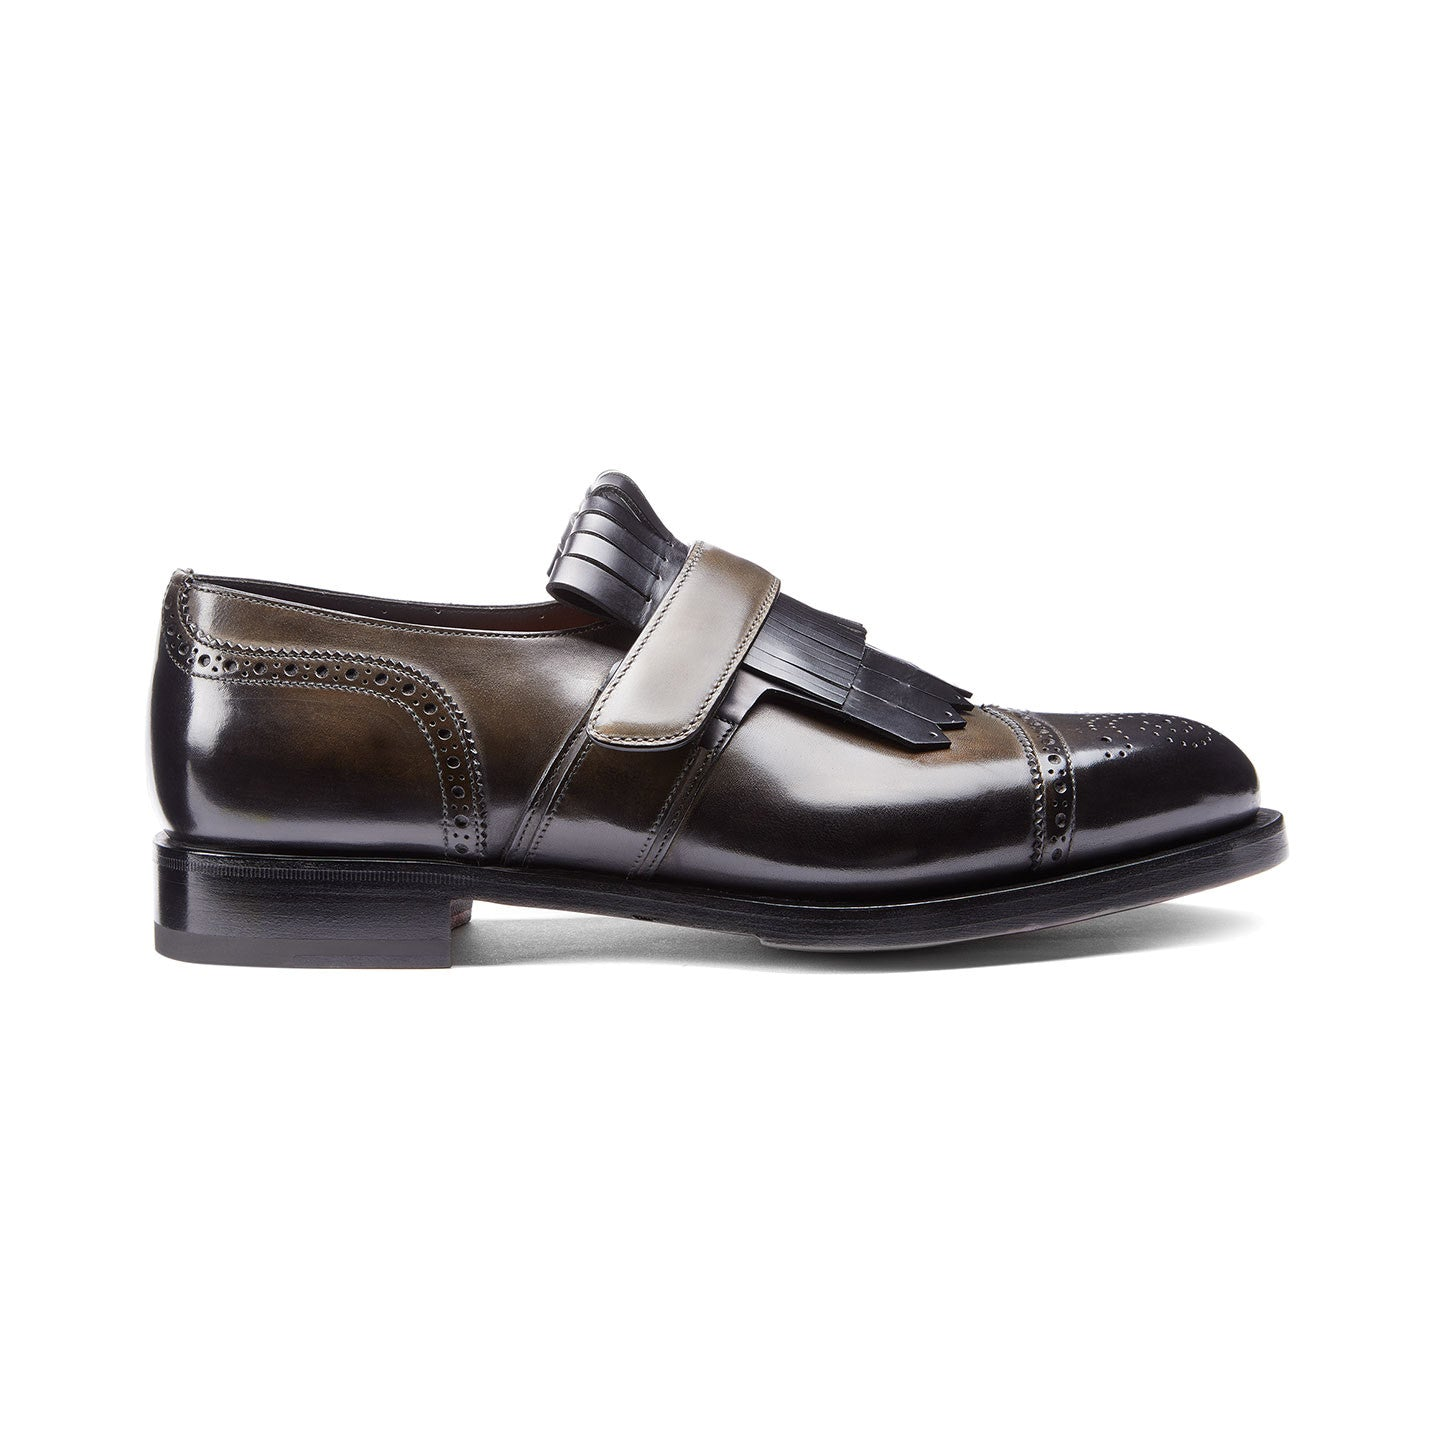 LEATHER SINGLE-BUCKLE SHOES